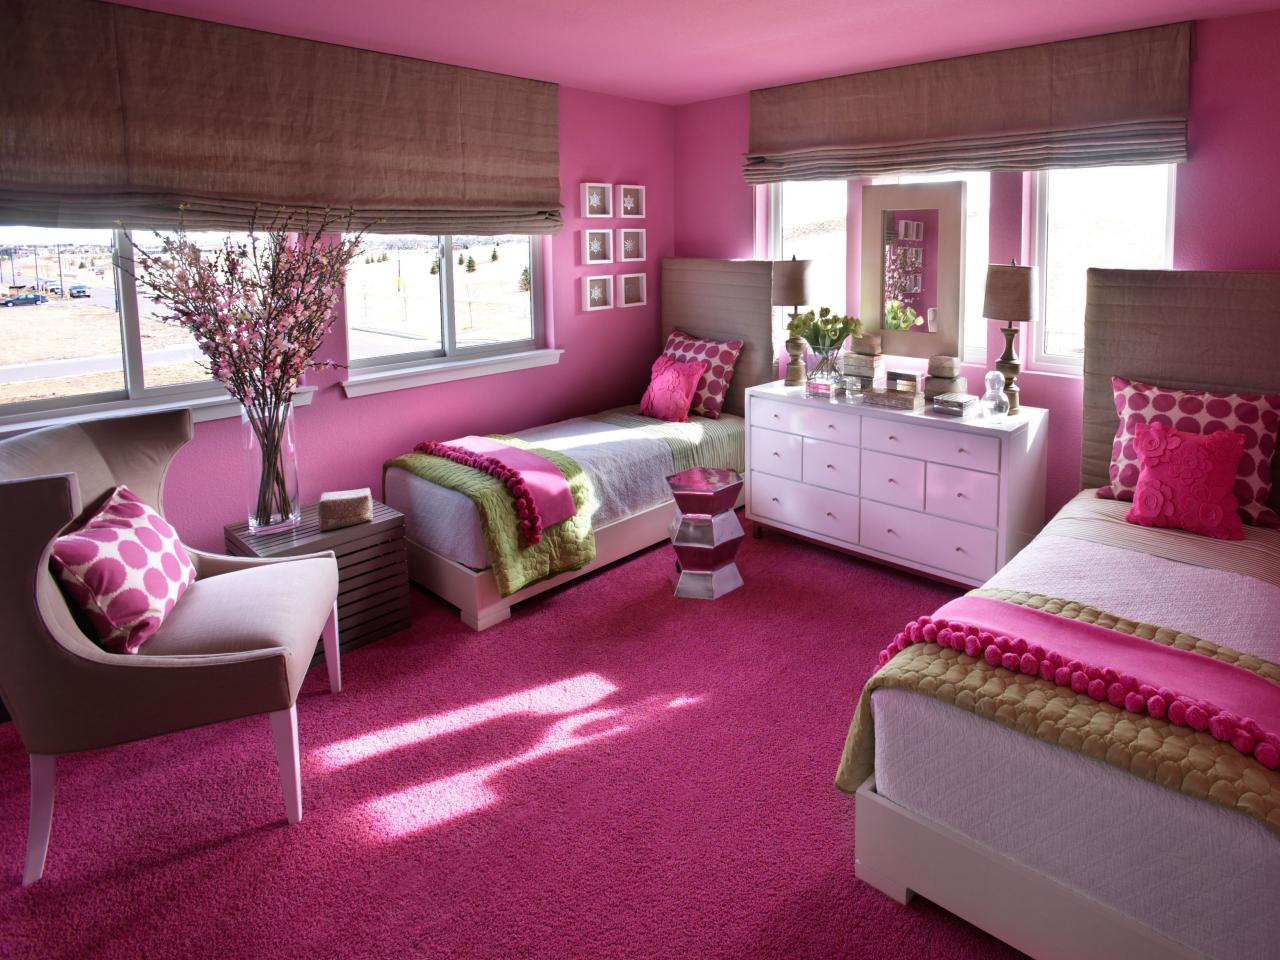 Bedroom ideas for girls pink - Tags